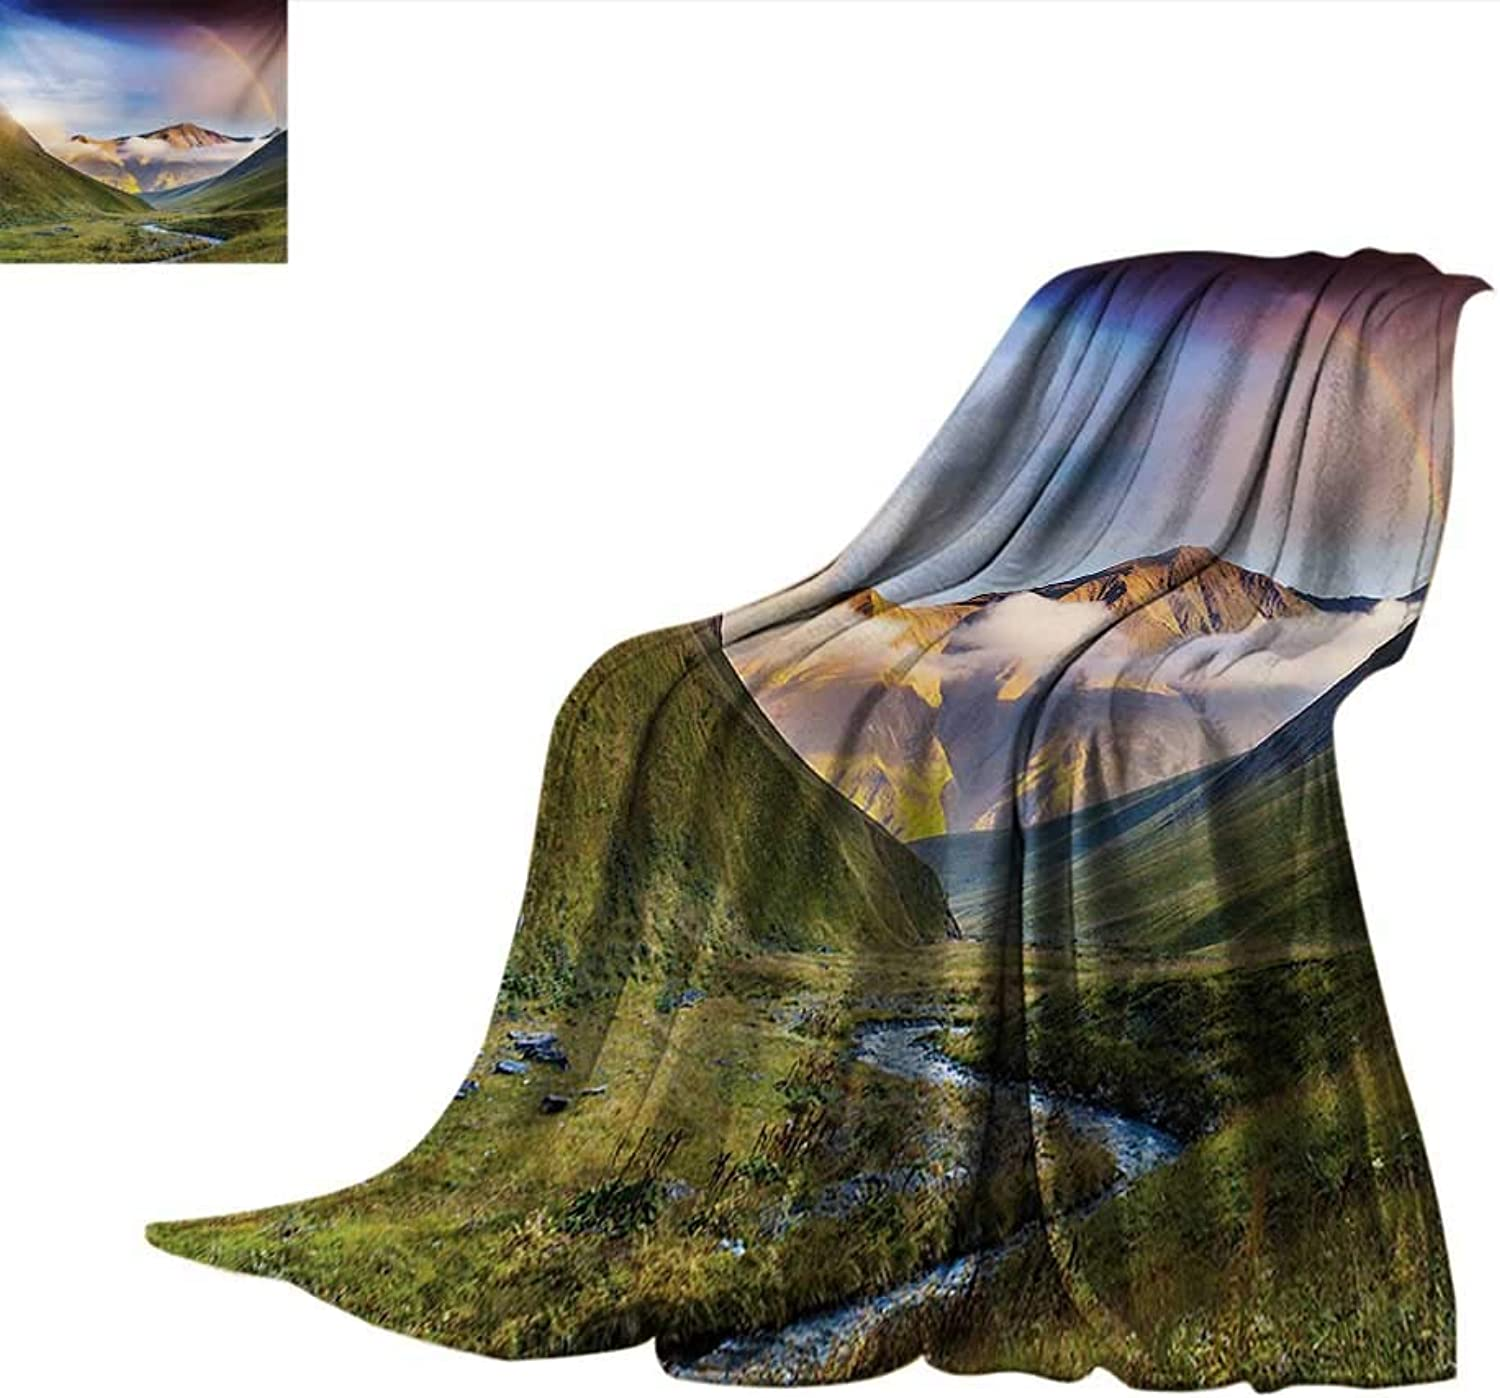 LandscapeFlannel Single Student blanketSerene Meadow with Narrow Riverbed Mountains Rainbow Grass Clouds Mist at DaytimeStudent Blanket 80 x60  Multicolor